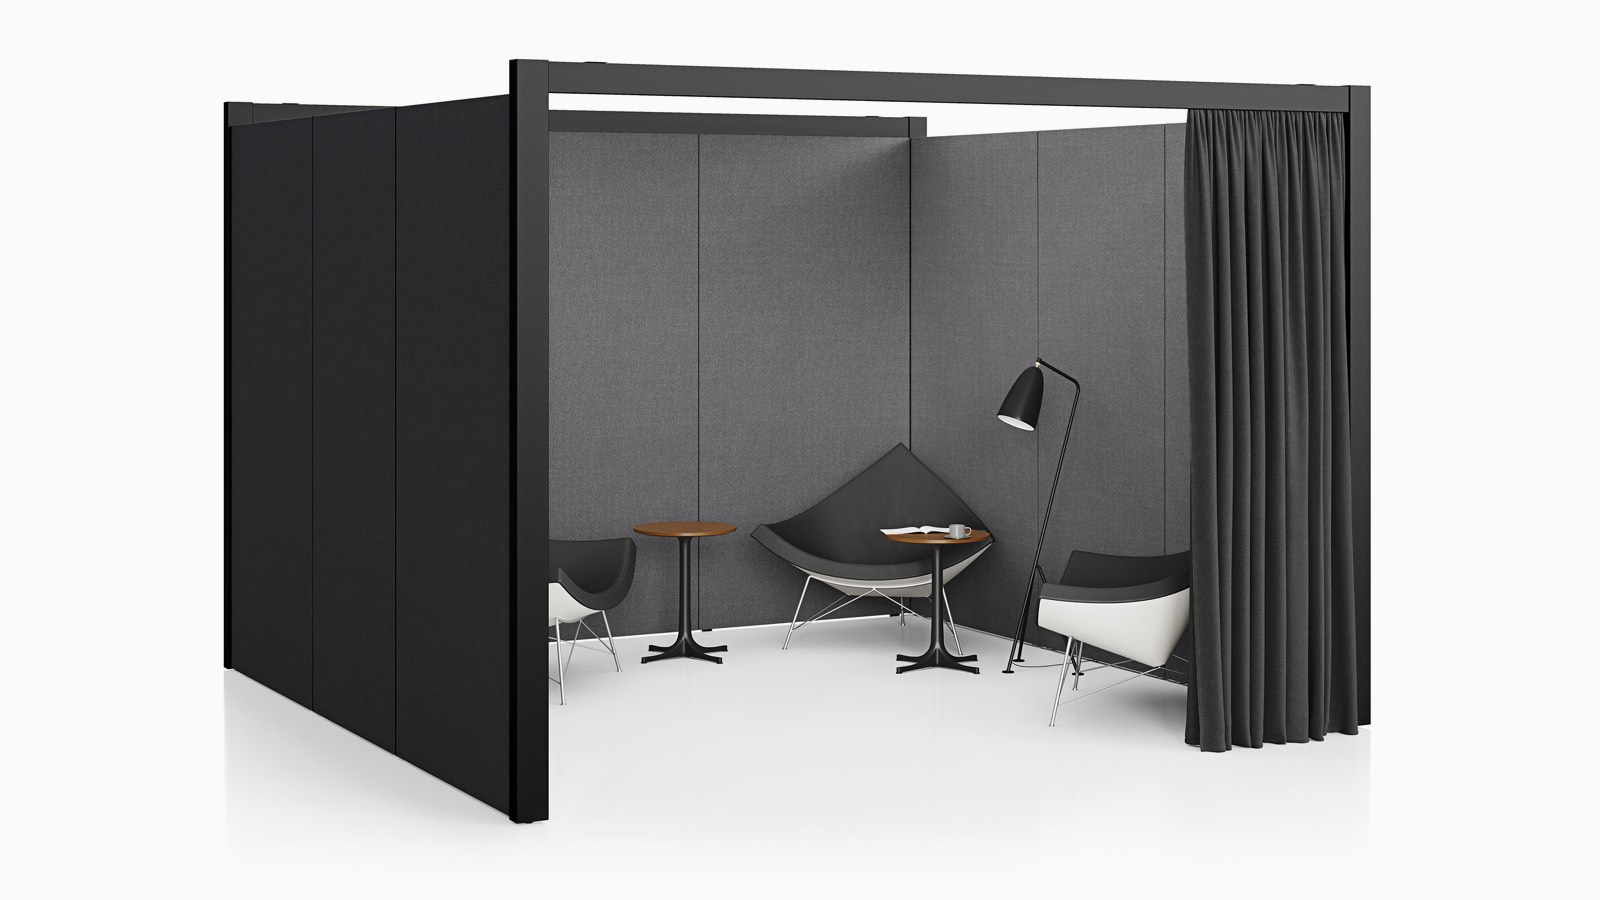 A three-sided Overlay space with gray tackable fabric exterior walls and a black curtain with three chairs and three side tables inside.